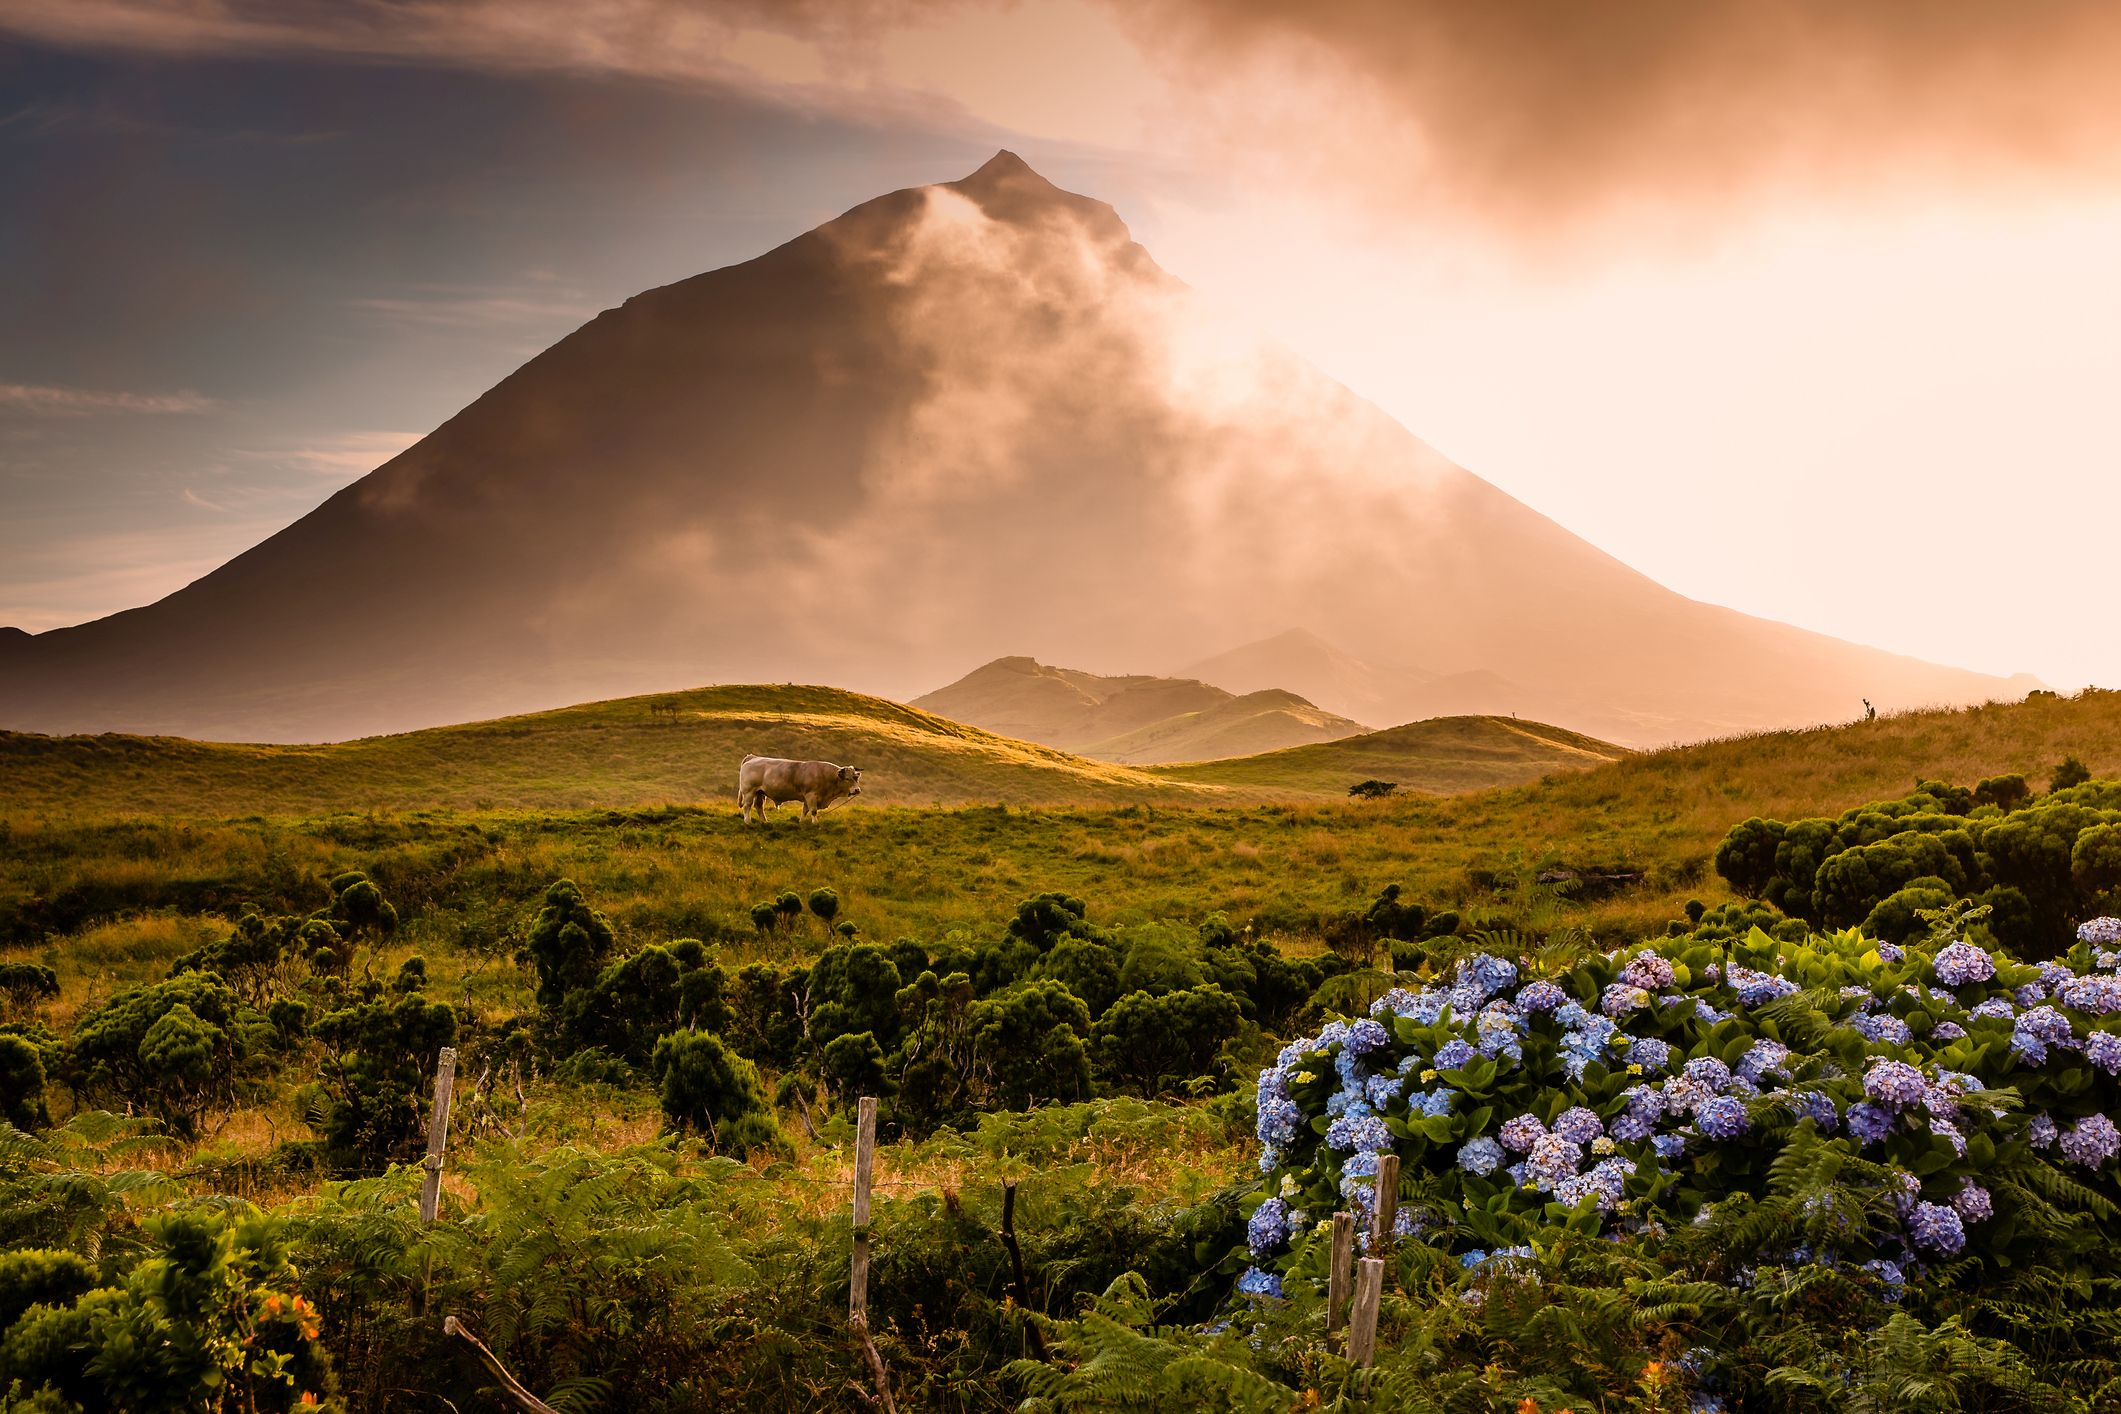 Pico, one of the islands in the Azores